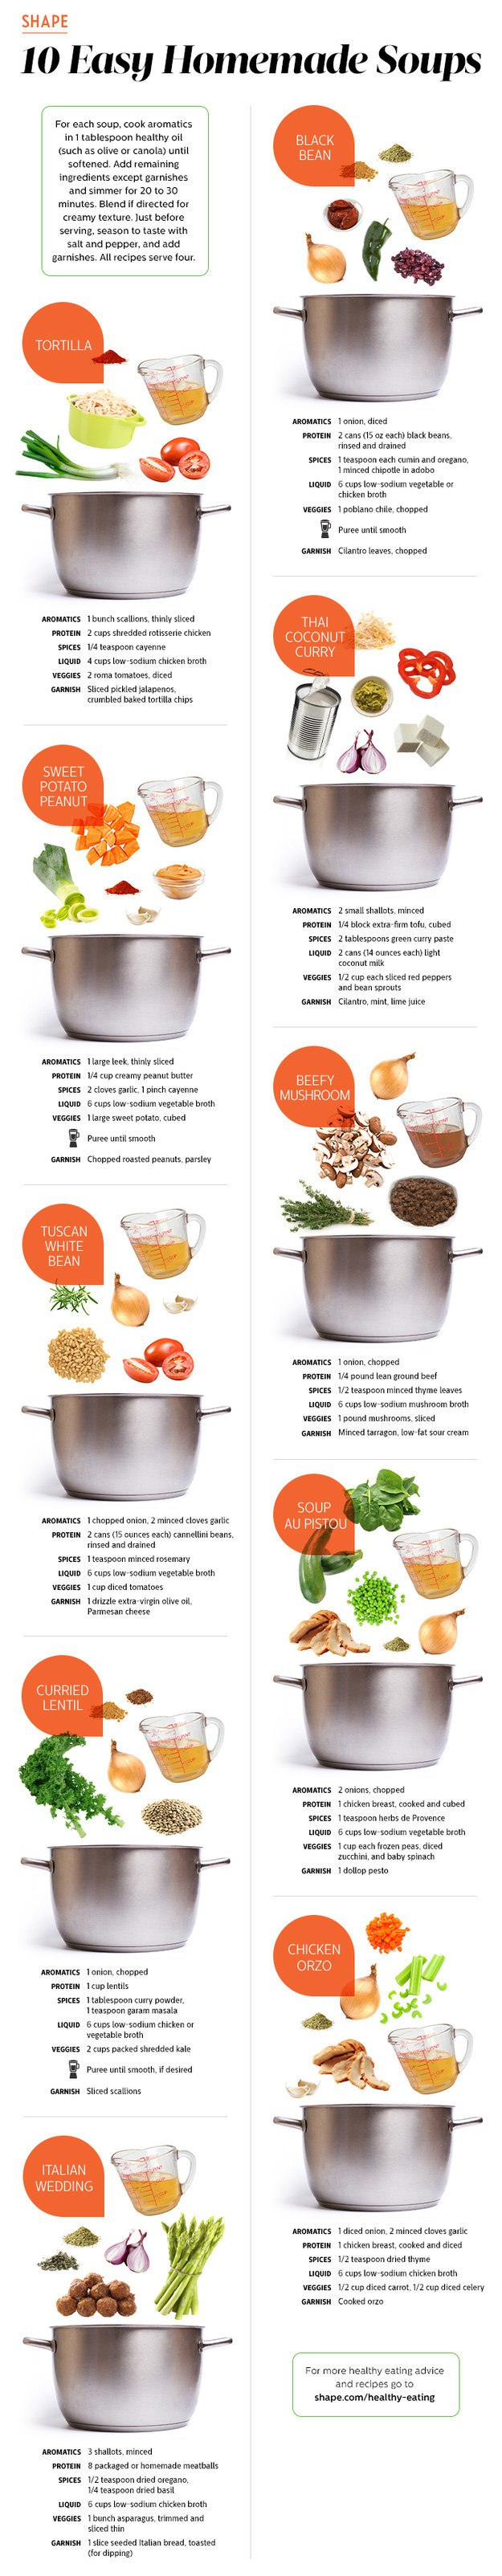 making perfect homemade soups guide